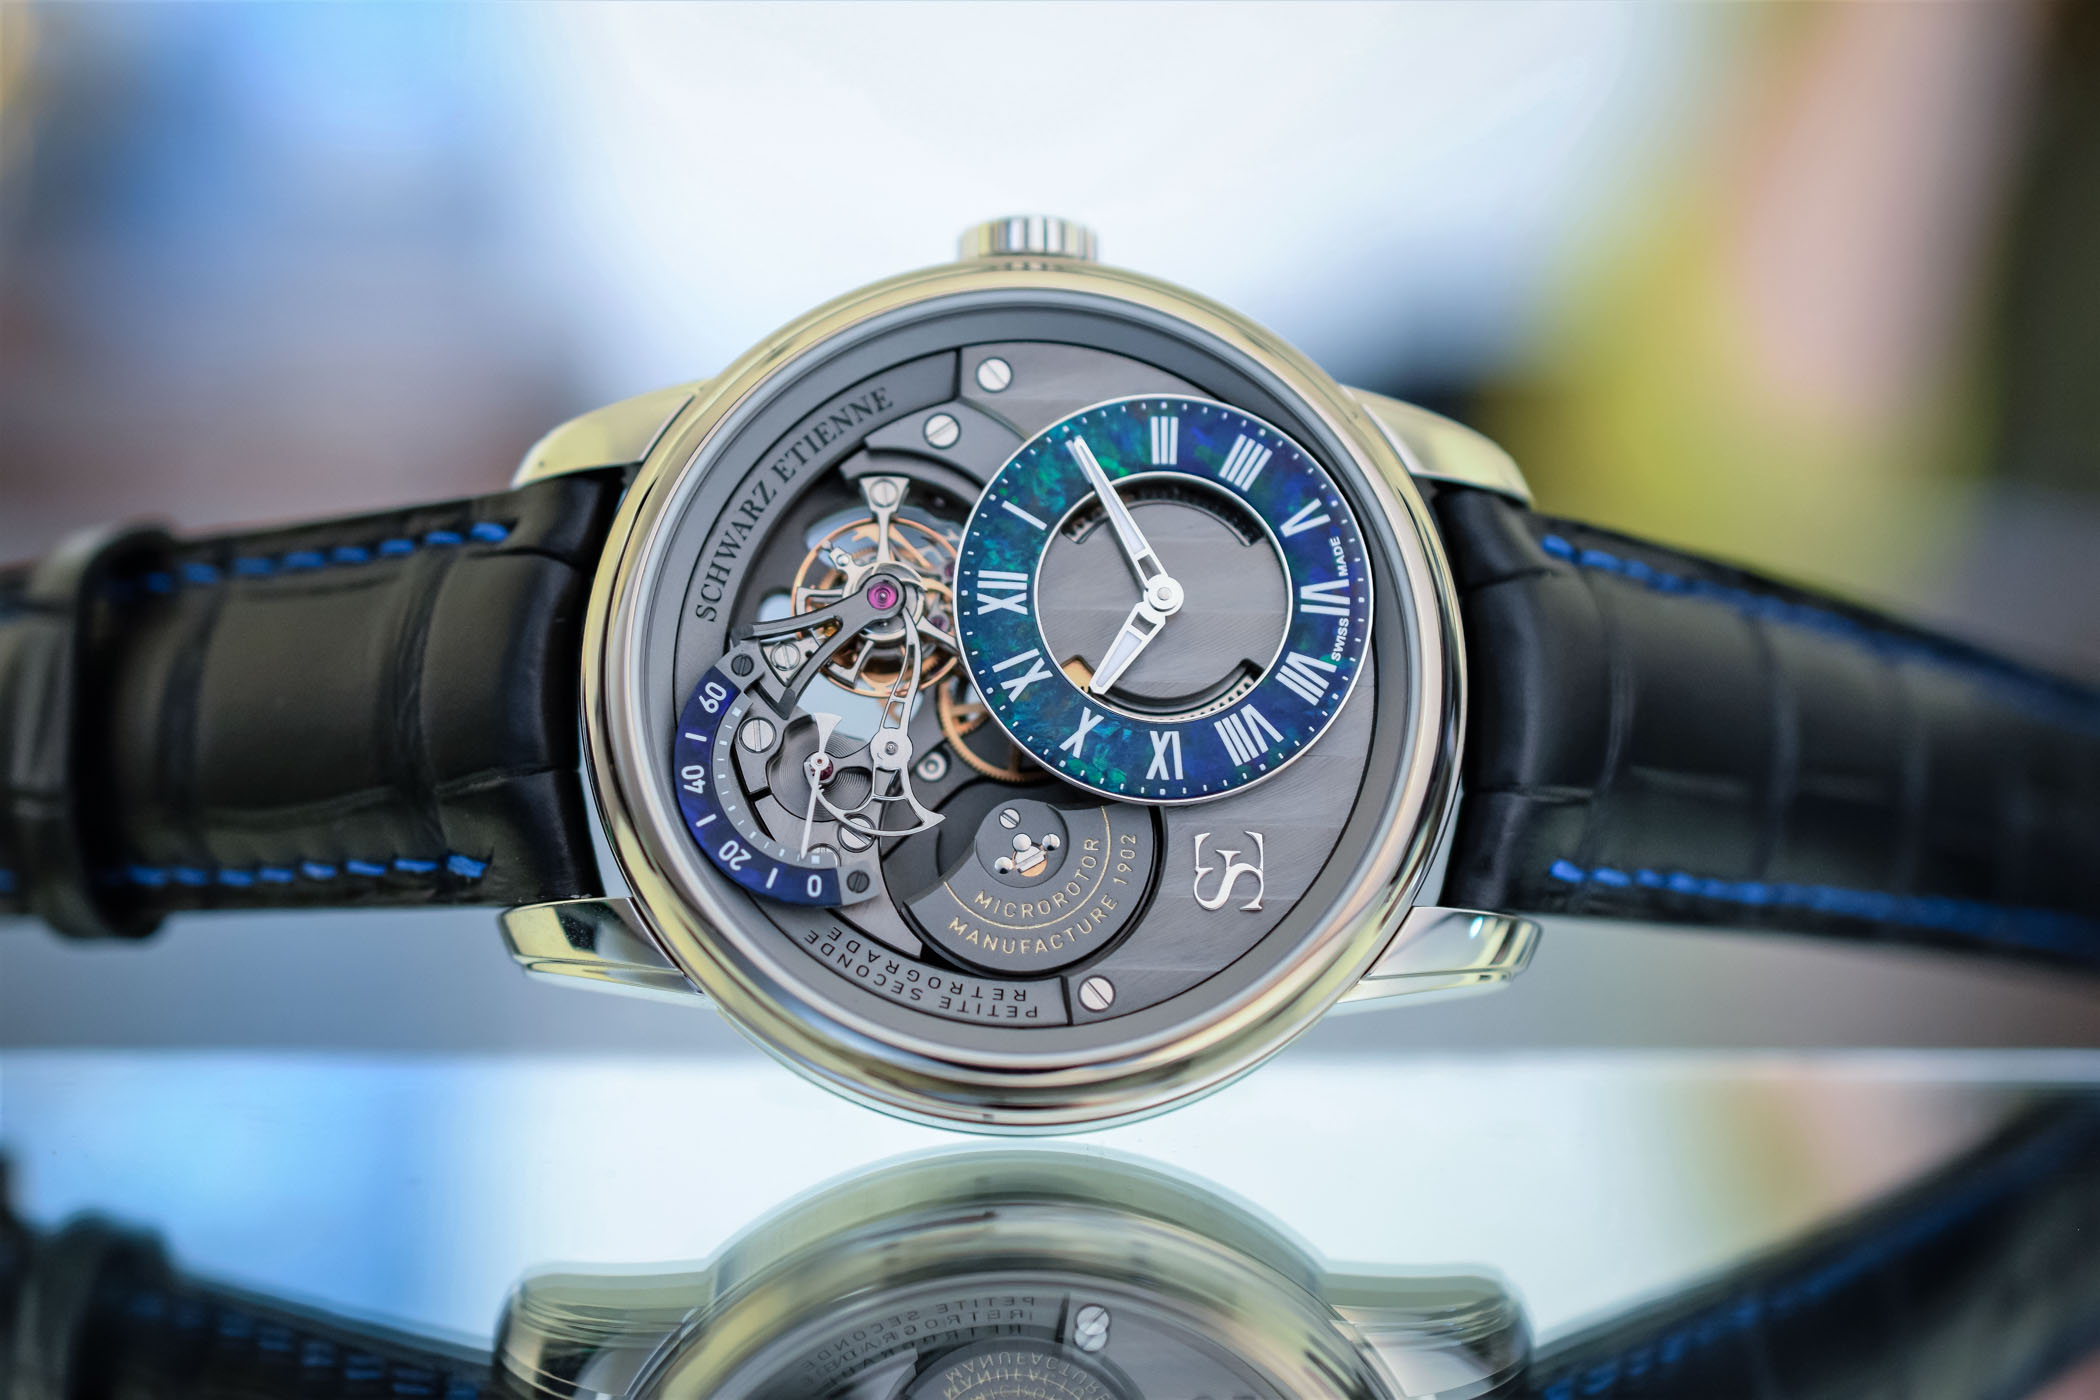 Schwarz Etienne La Chaux-de-fonds Tourbillon Petite Seconde Retrograde - White Gold blue Opal stone